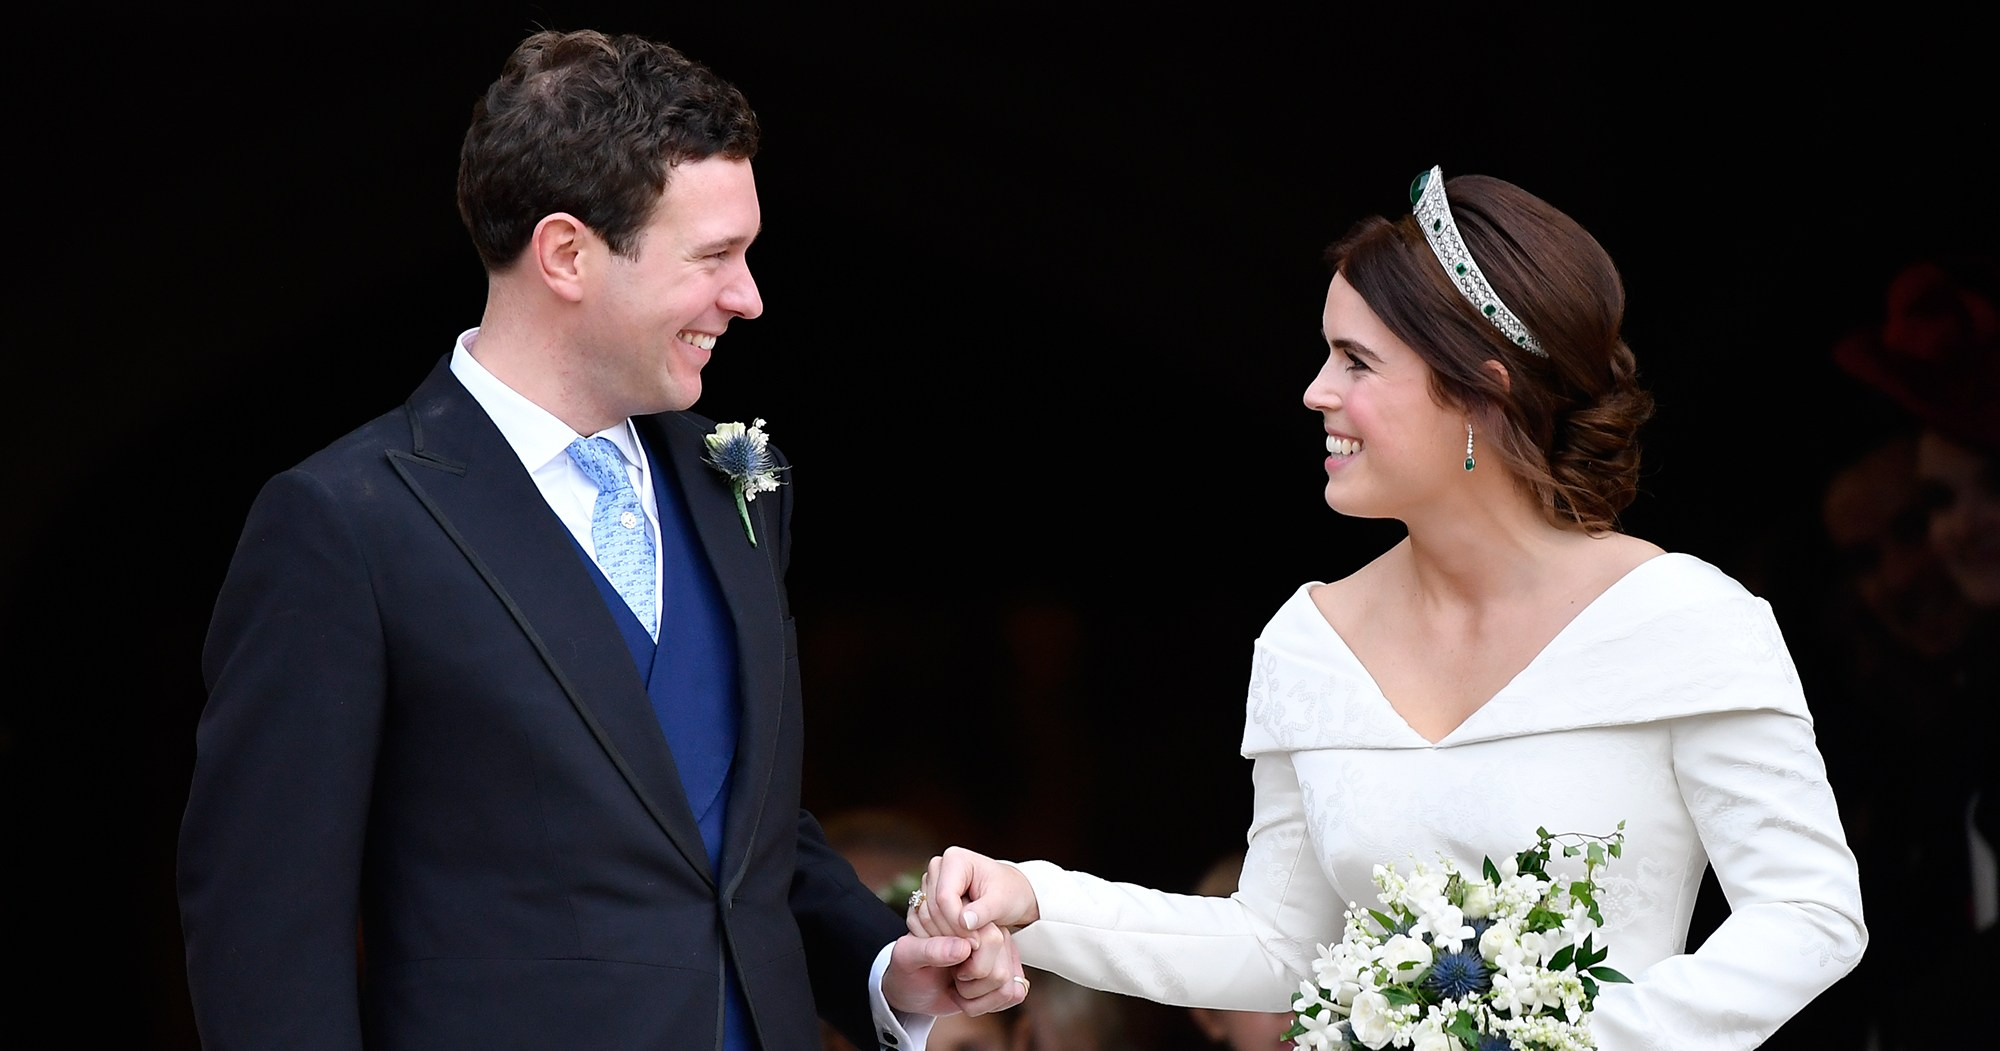 Why Princess Eugenie and Jack Brooksbank Didn't Receive Royal Titles